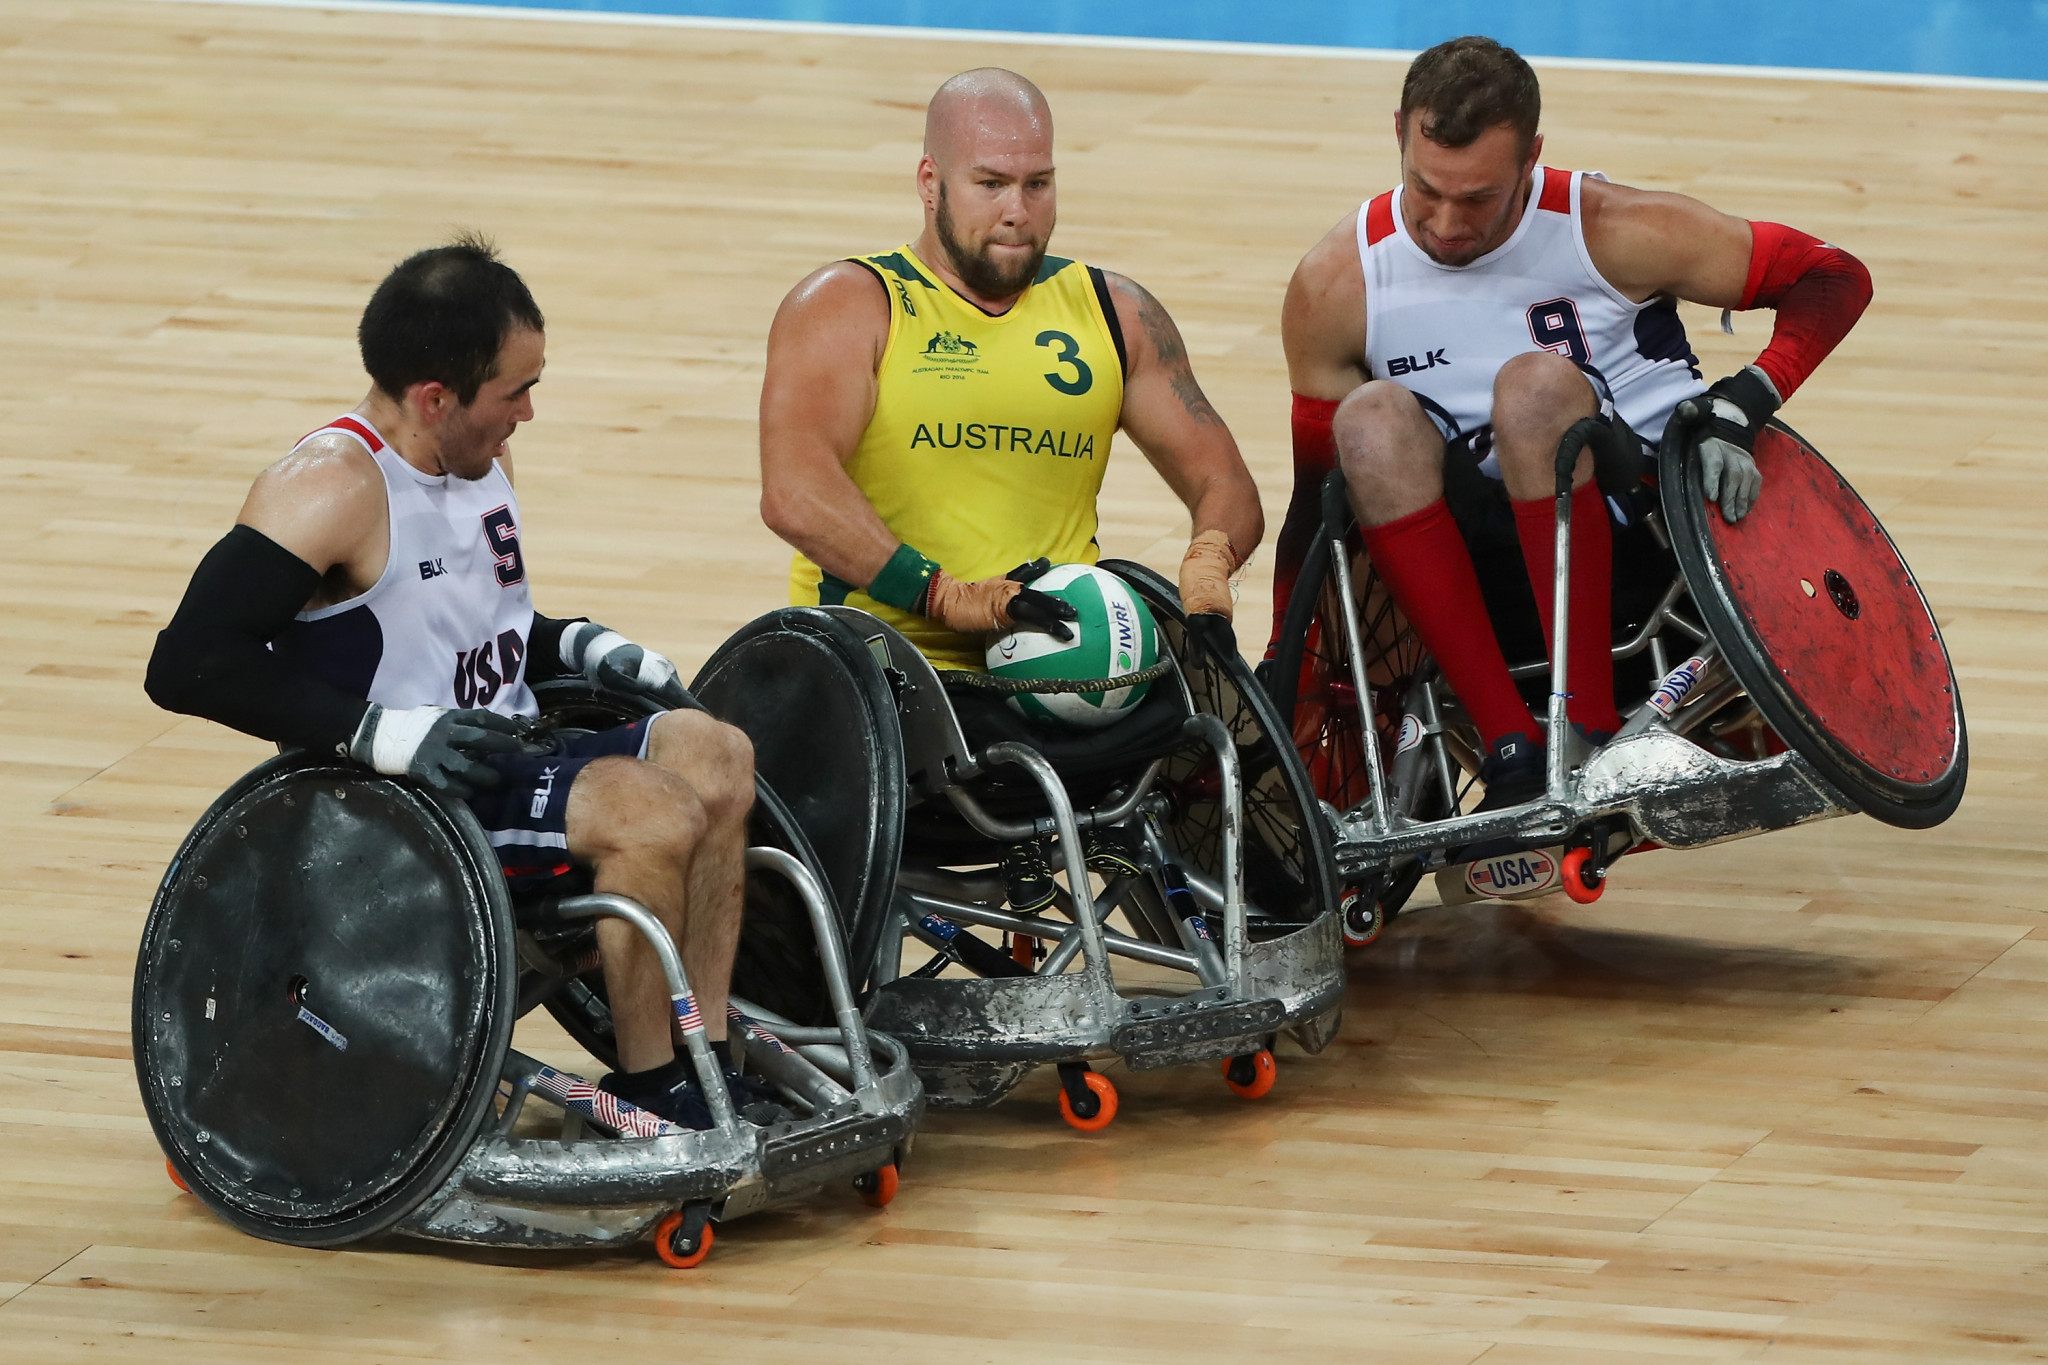 Australia names wheelchair rugby team of 12 for Tokyo 2020